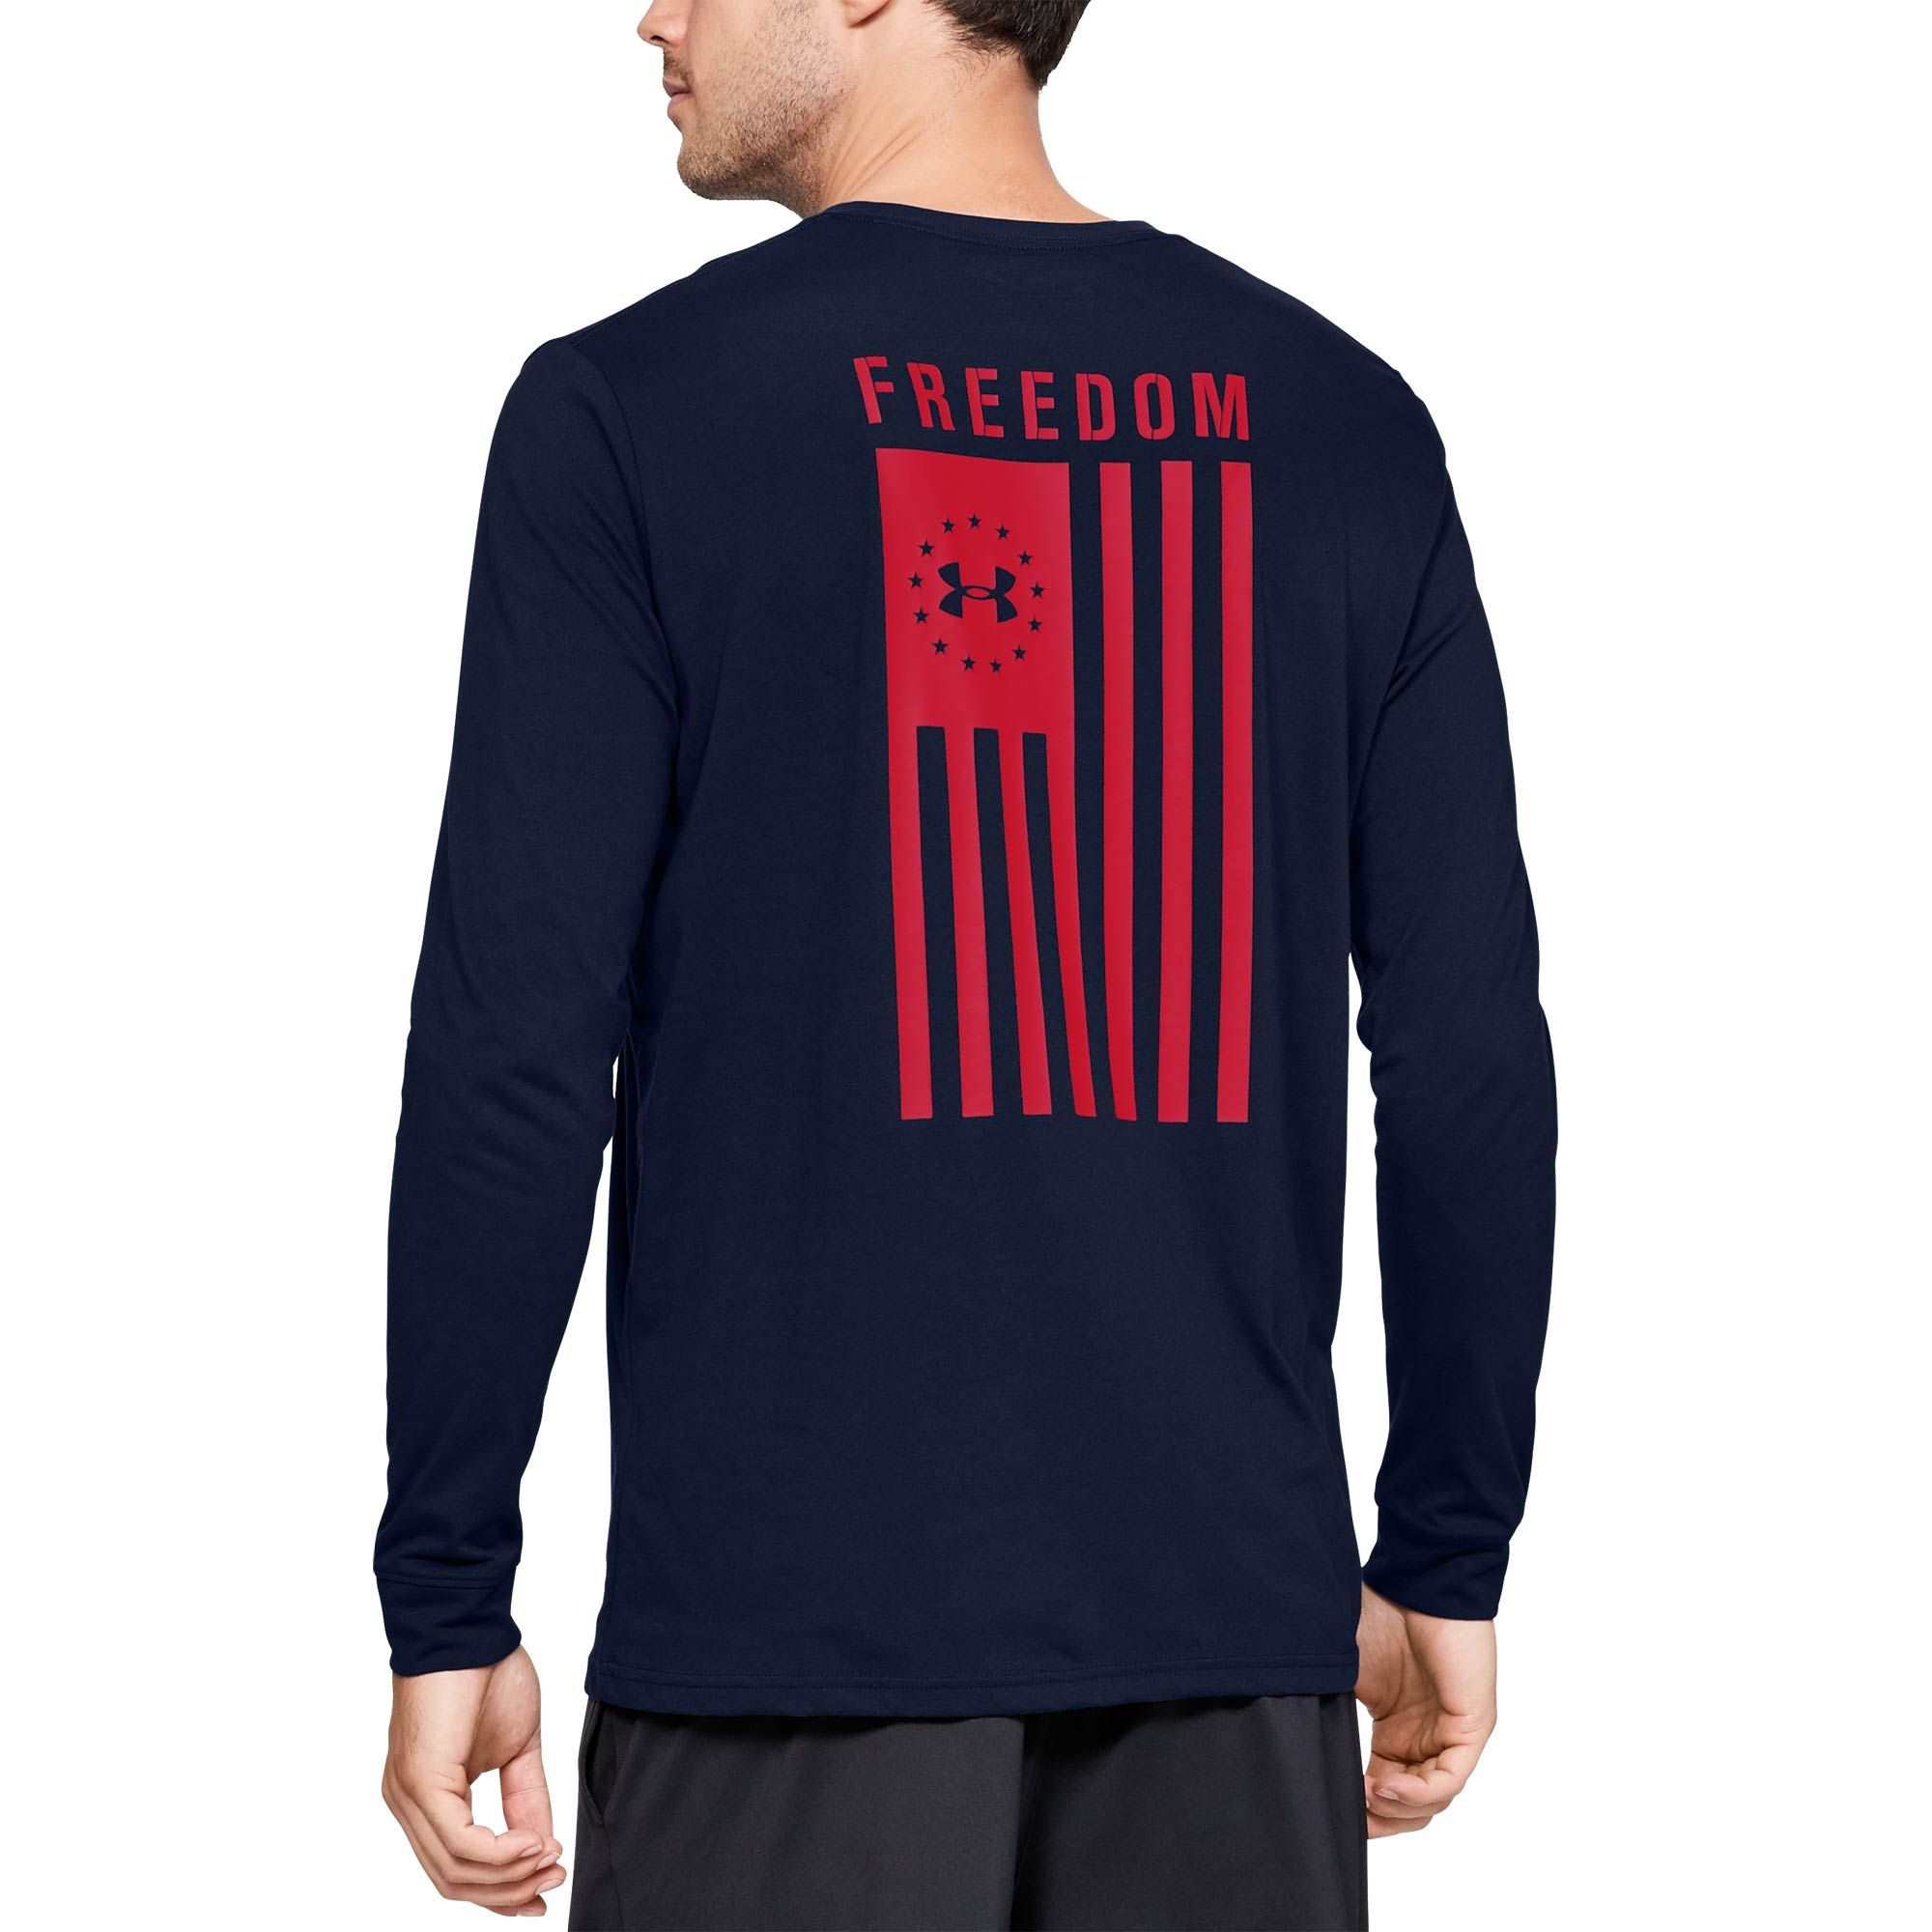 Constructed From A Super Soft Cotton Blend Fabric This Long Sleeve Men S Tee From Under Armour Provides All Da Long Sleeve Tshirt Men Under Armour Hoodies Men